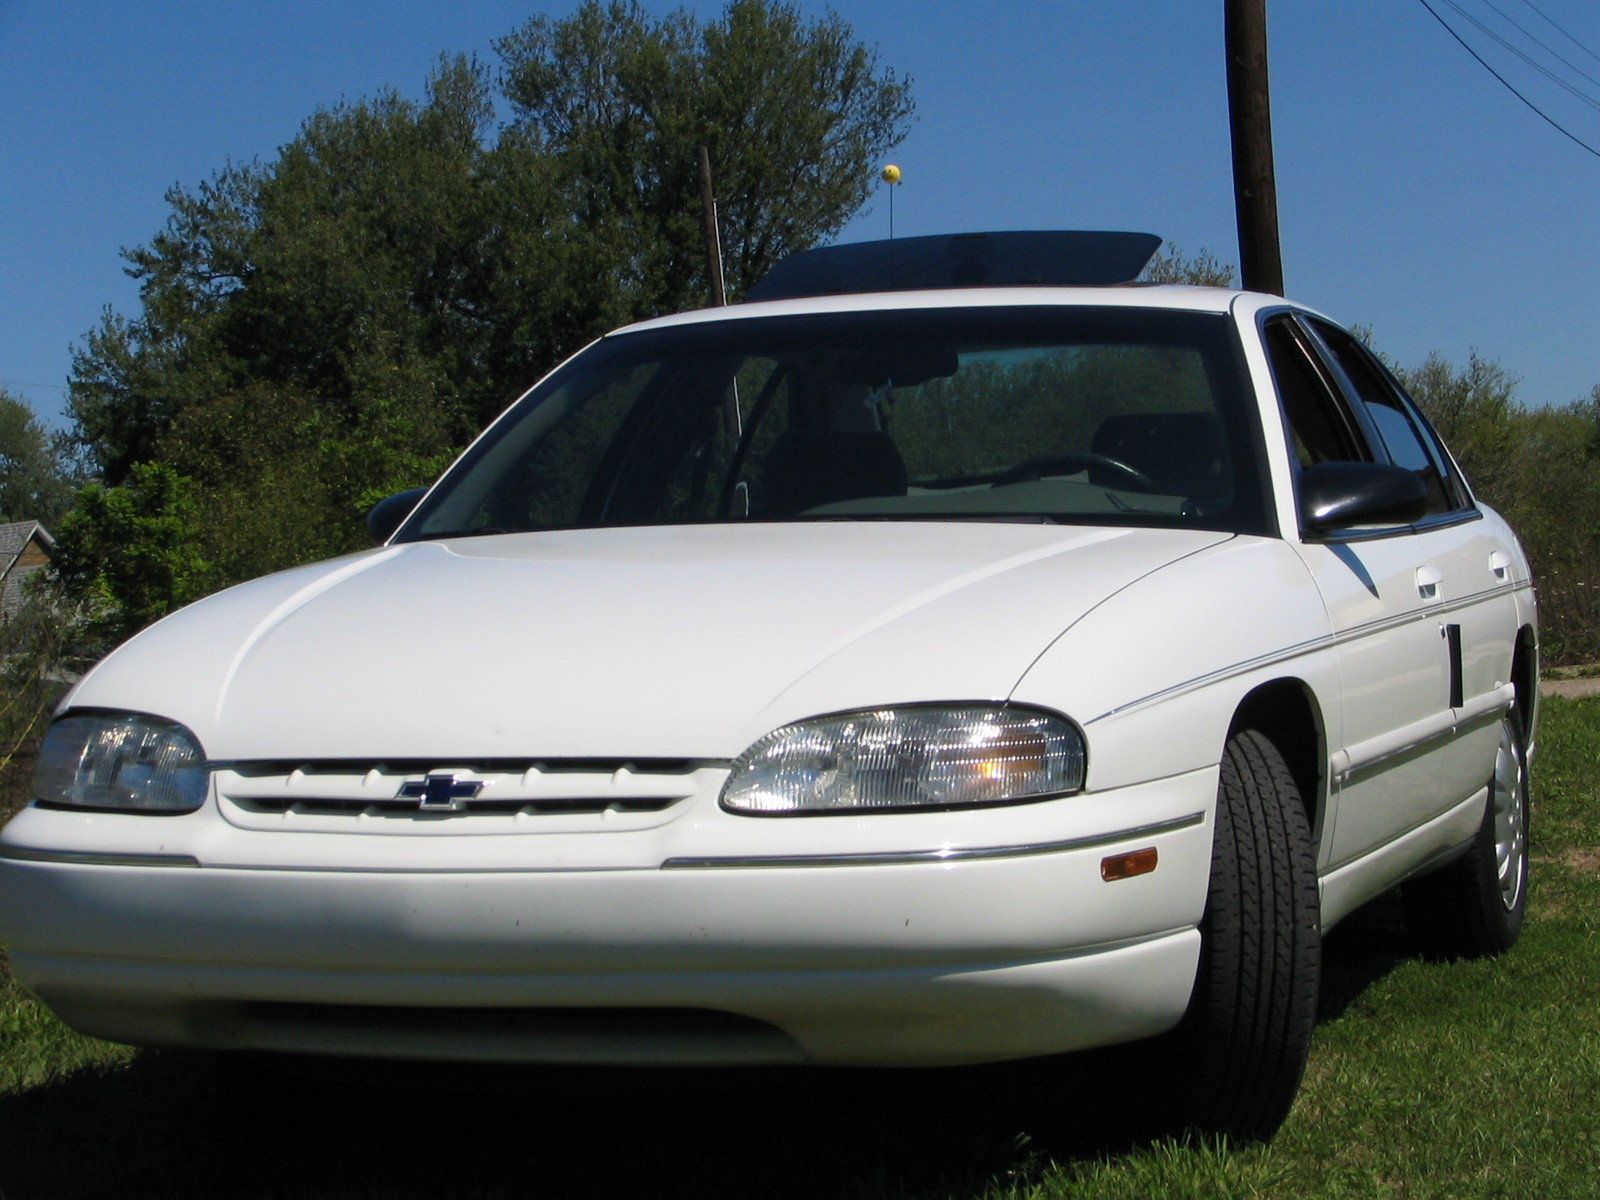 1999 Chevrolet Lumina 4 Dr STD Sedan picture